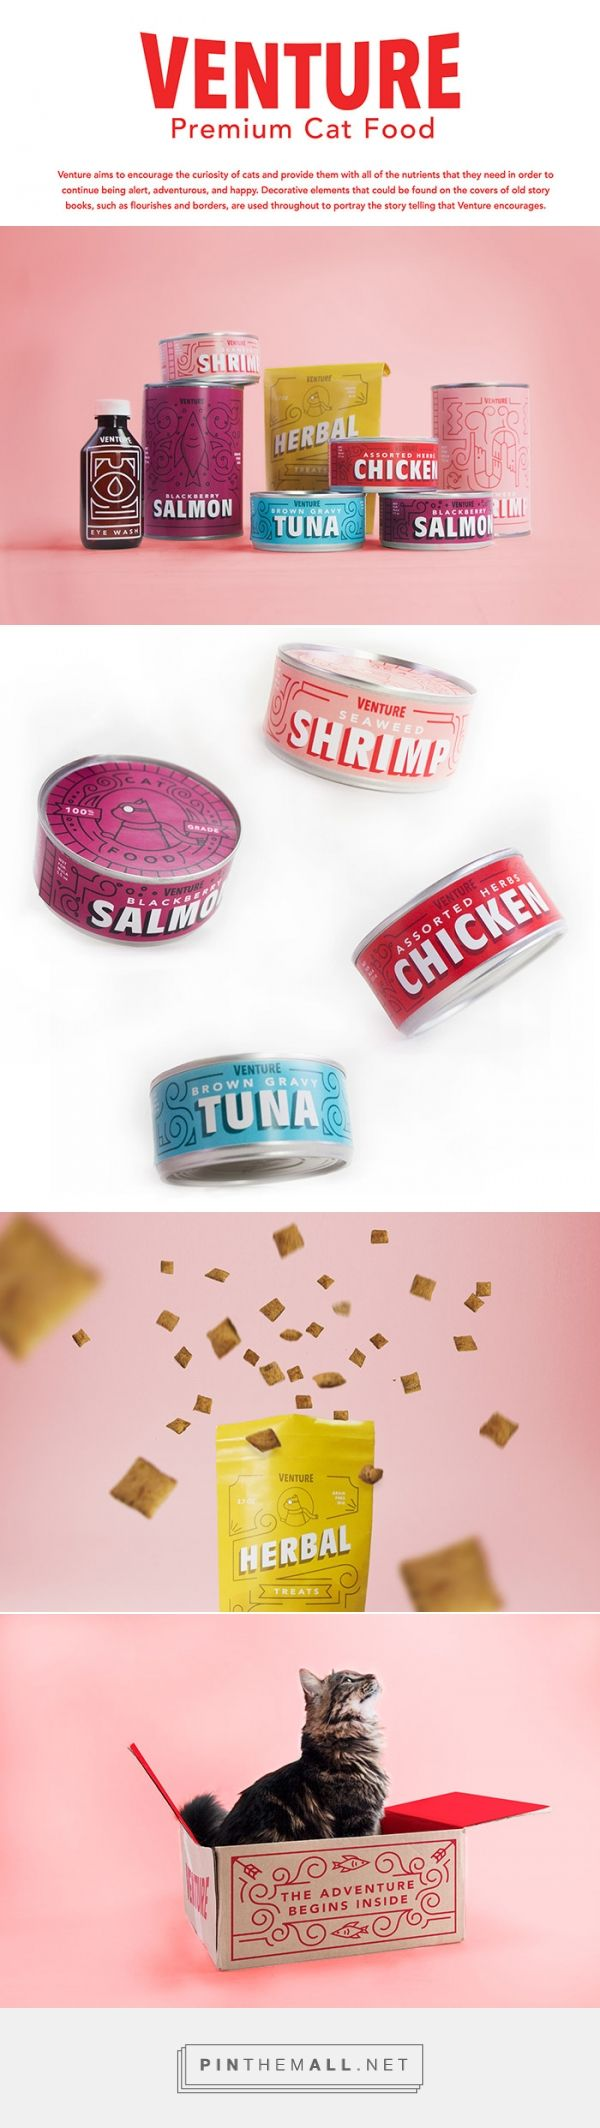 Venture Cat Food by Ashton Butler. Source: Daily Package Design Inspiration. Pin curated by #SFields99 #packaging #design